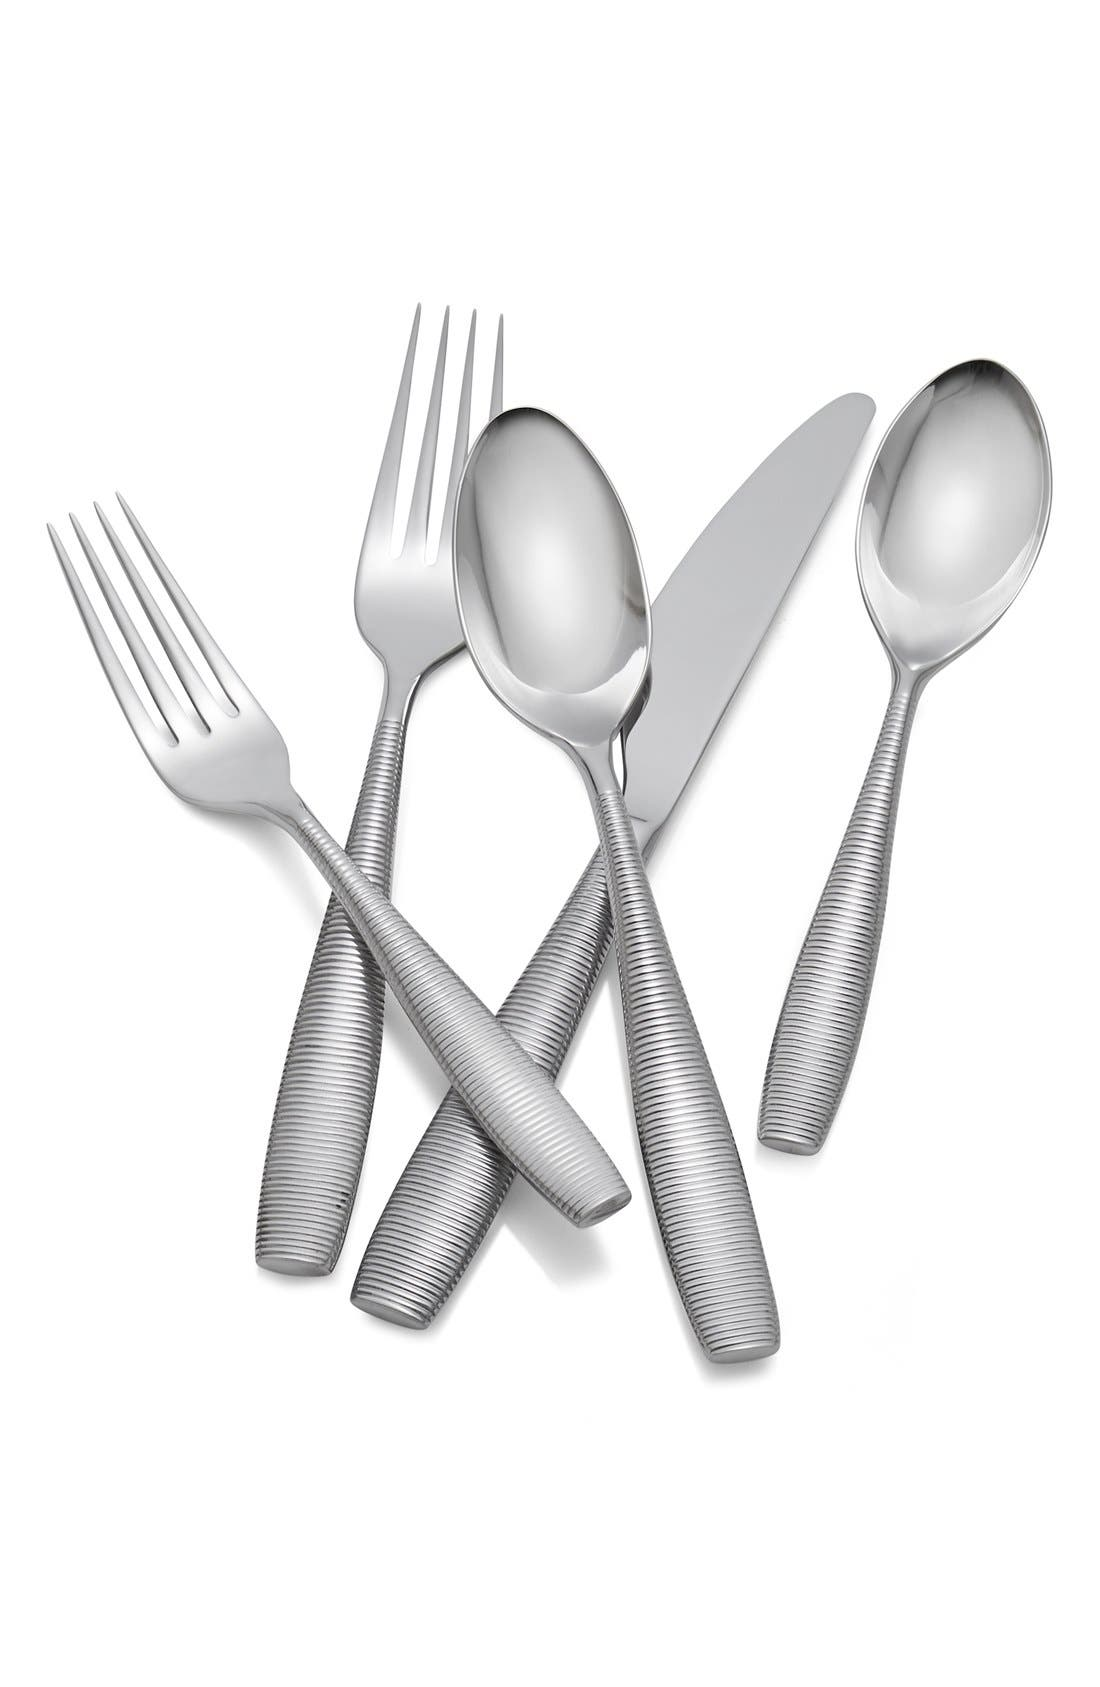 'Fiona' 5-Piece Stainless Steel Place Setting,                             Main thumbnail 1, color,                             040